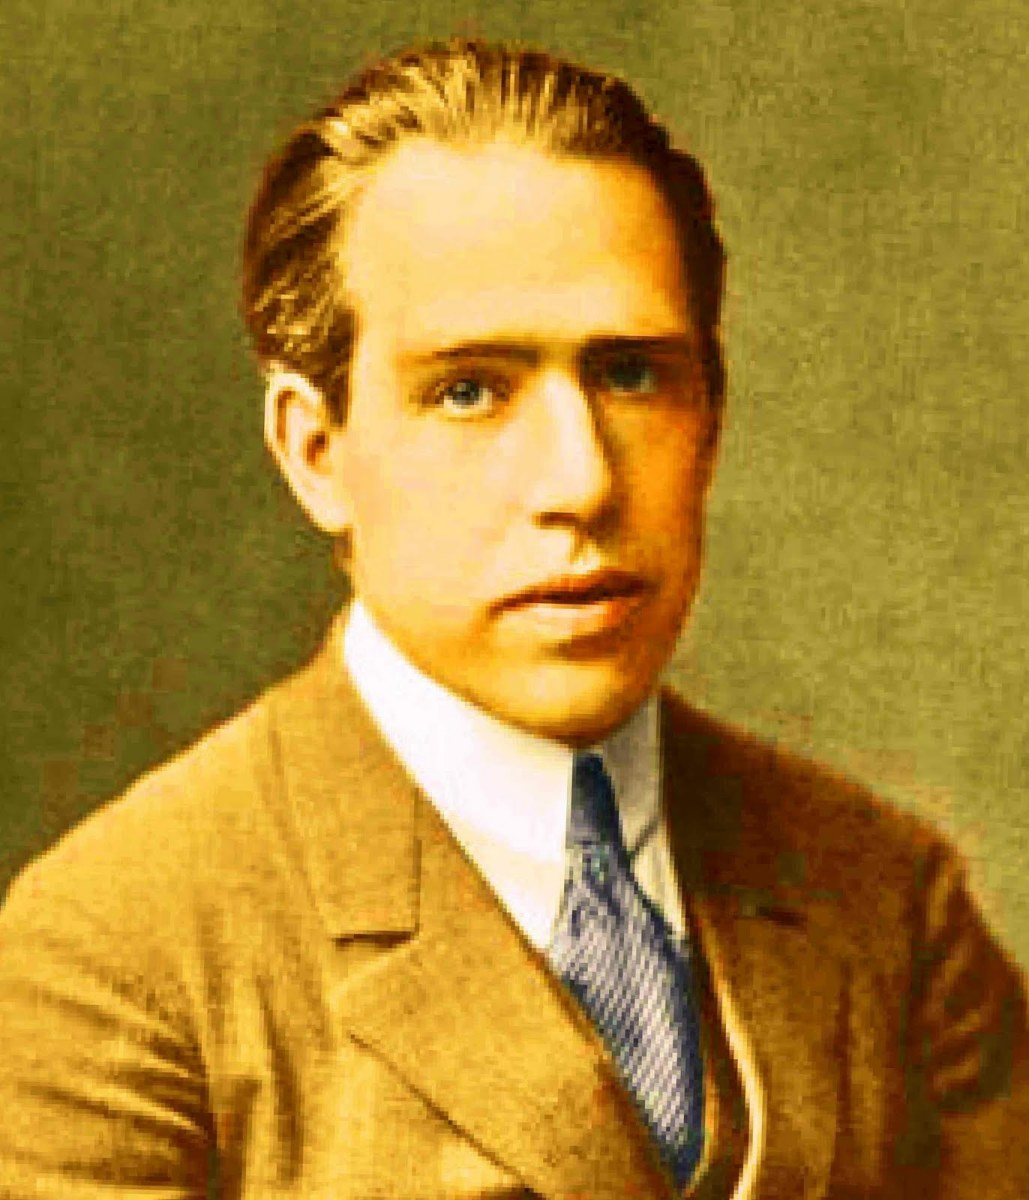 Niel Bohr (1885 –  1962) was a Danish physicist known for his  foundational contributions to further understanding of the  atomic structure and quantum theory.